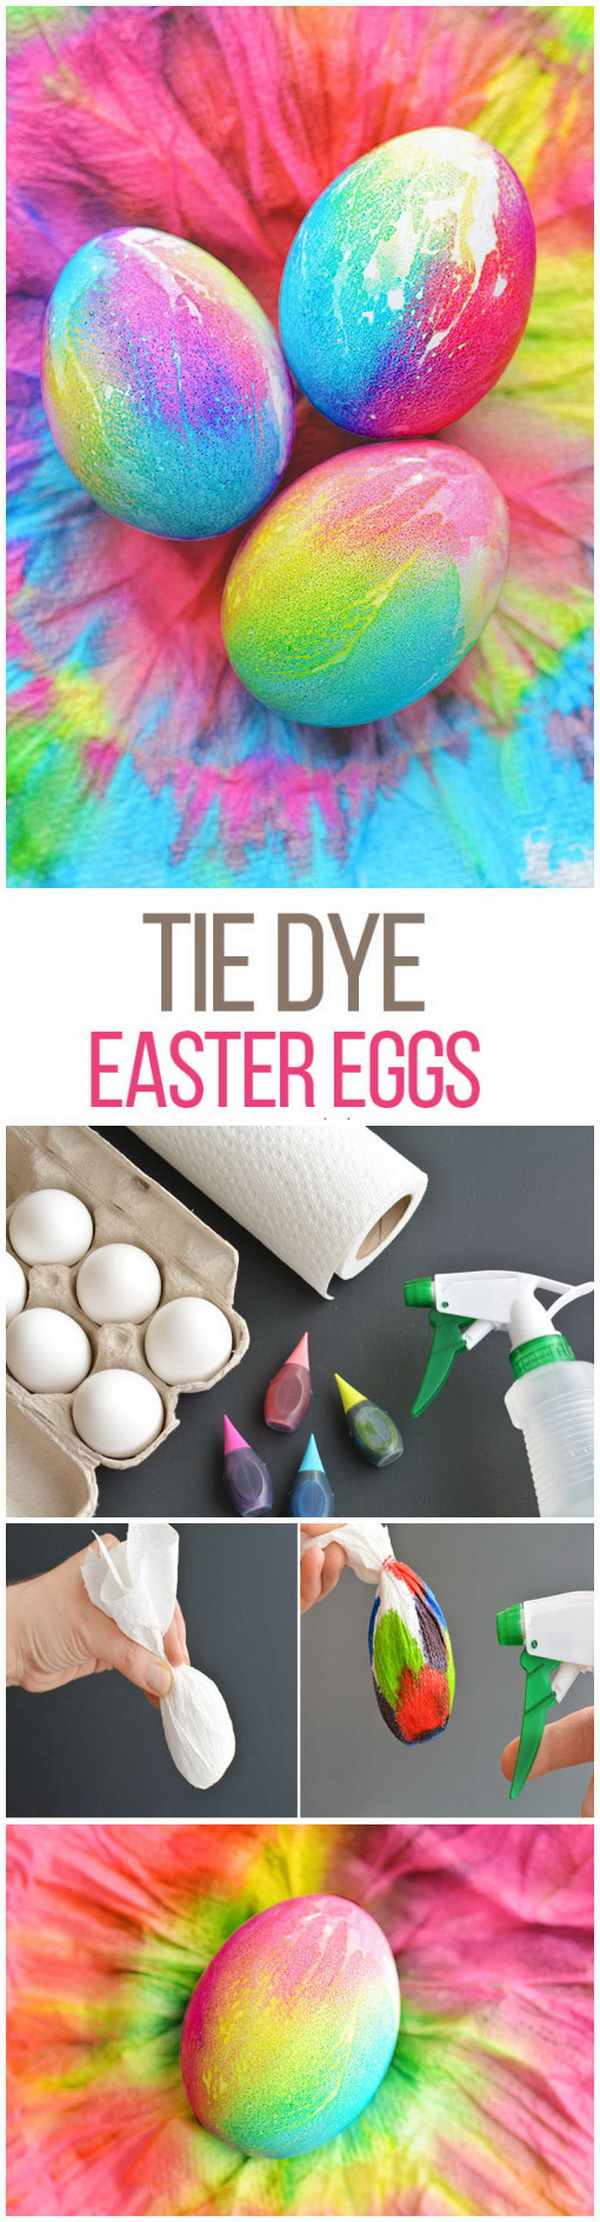 Easy Kids Craft Ideas: Tie Dye Easter Eggs Using Paper Towels.